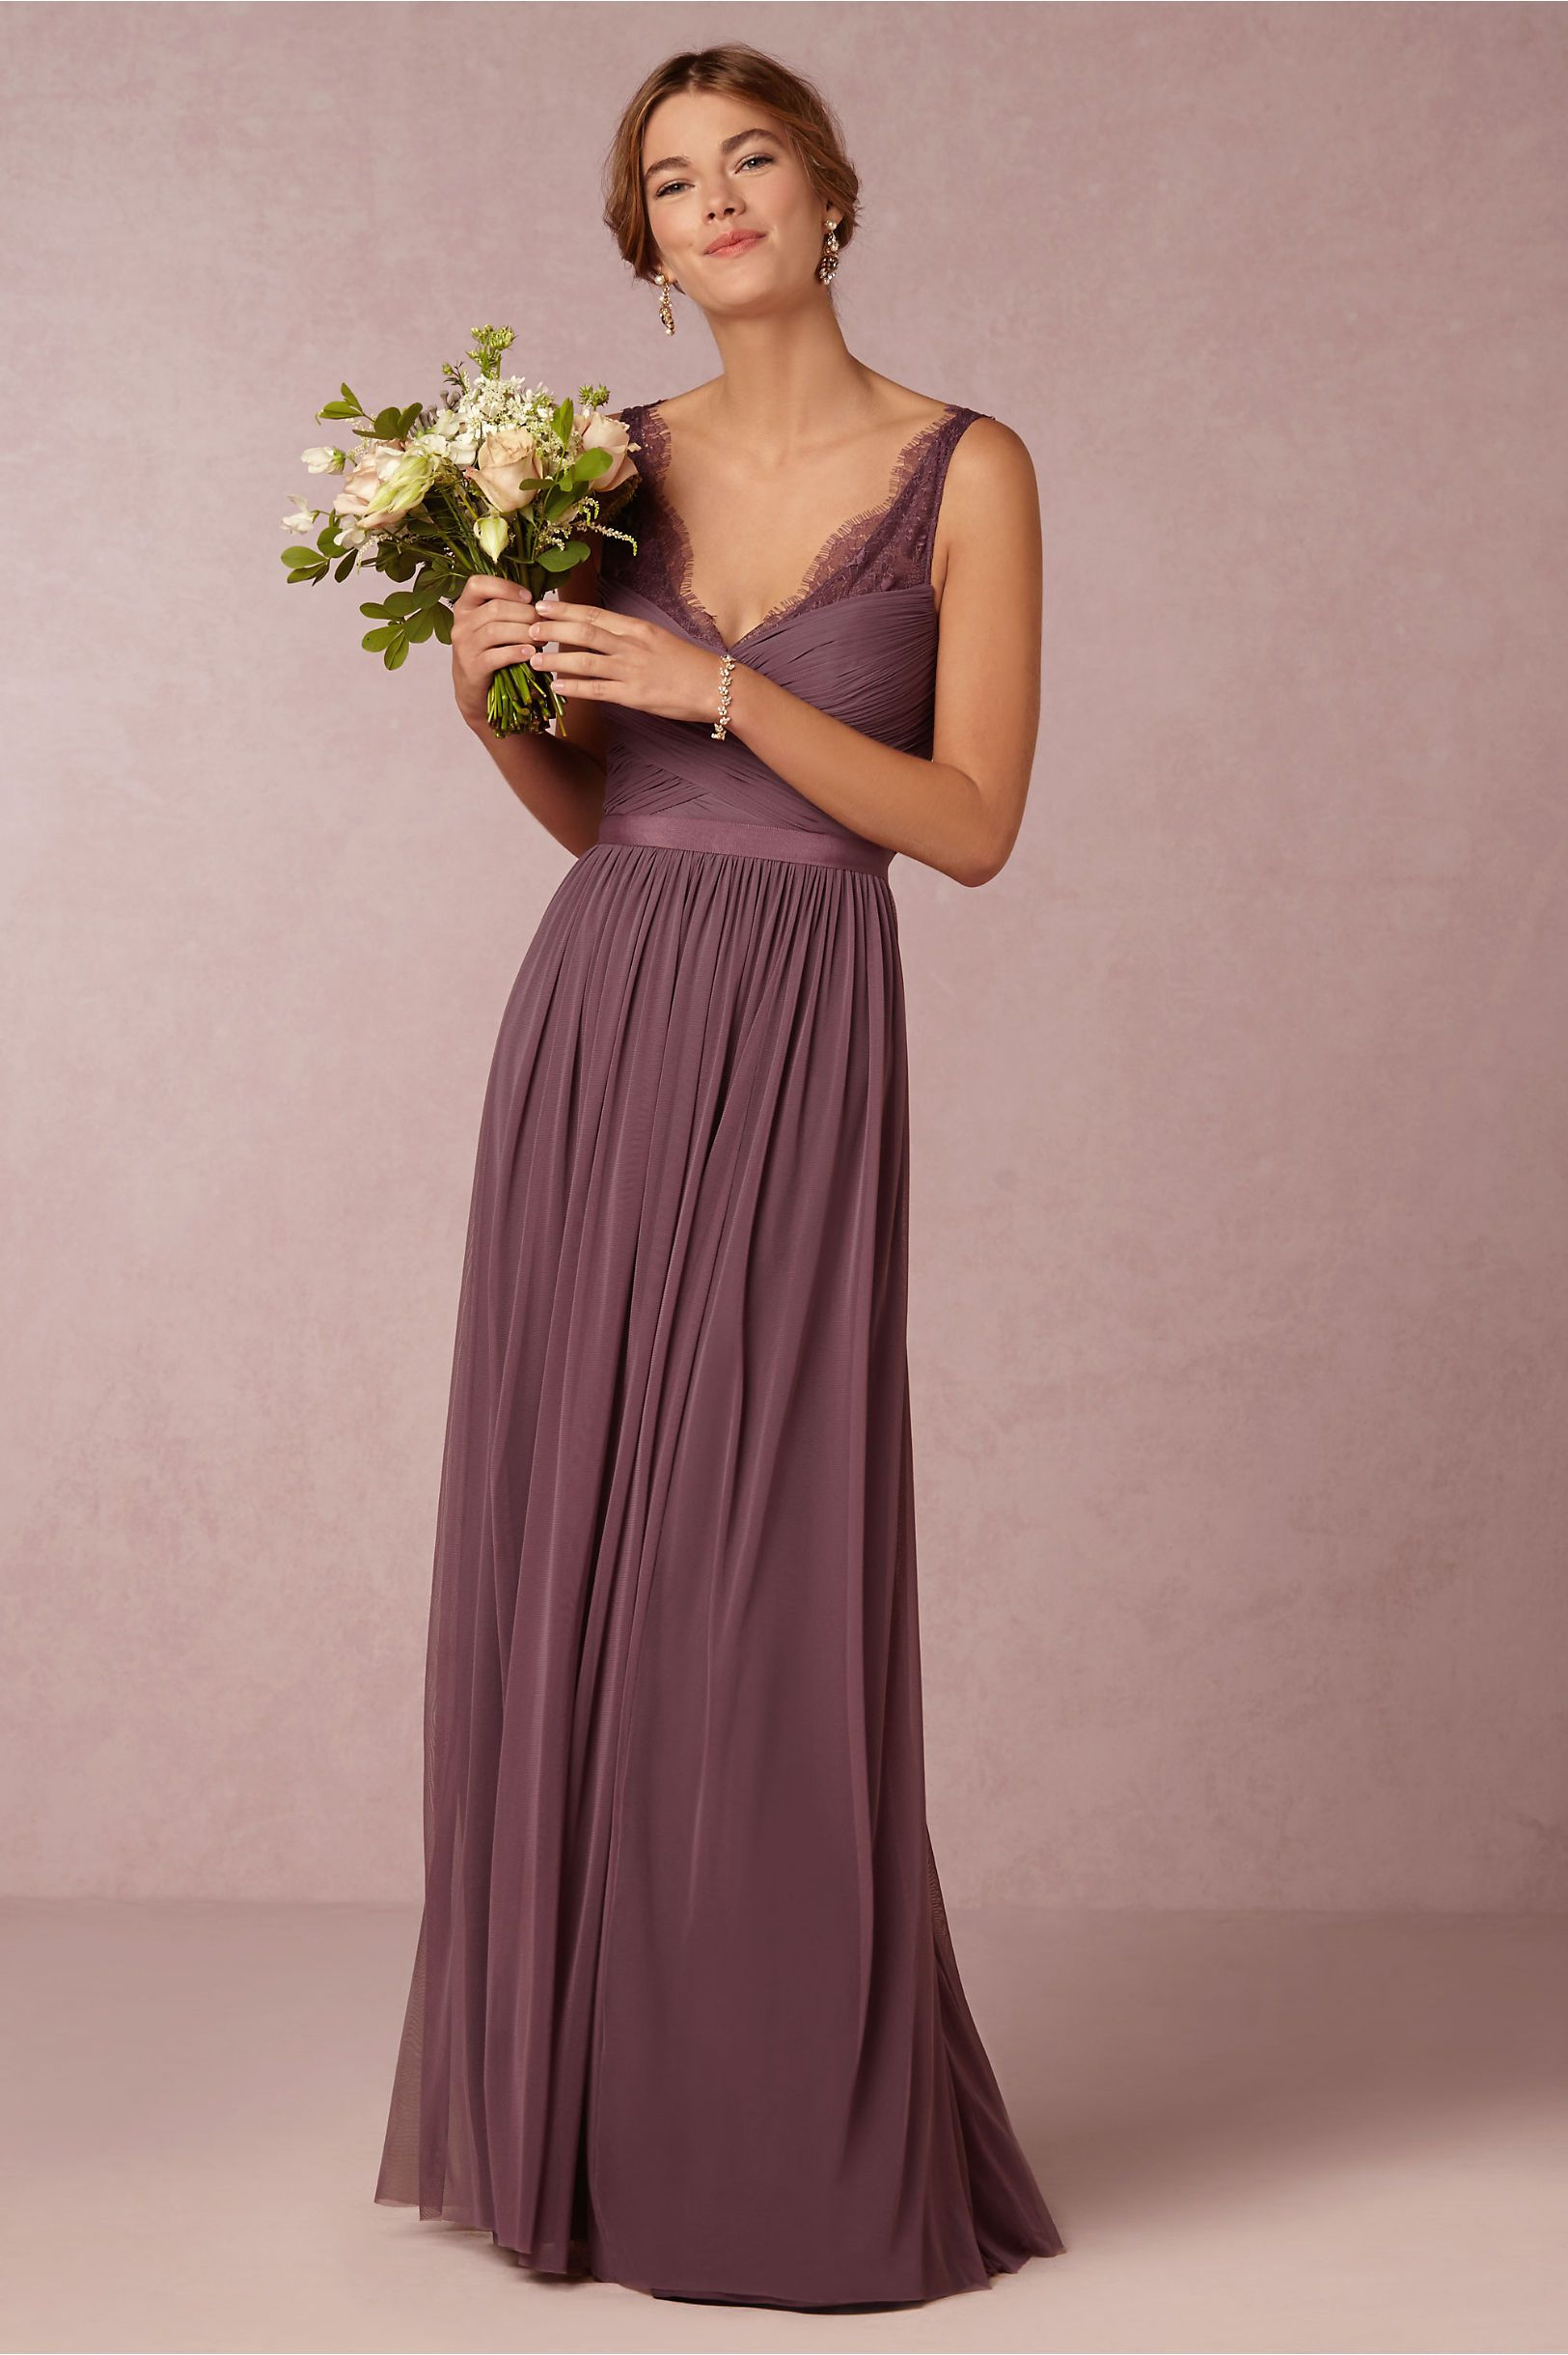 Fleur dress in bridesmaids bridesmaid dresses at bhldn these come